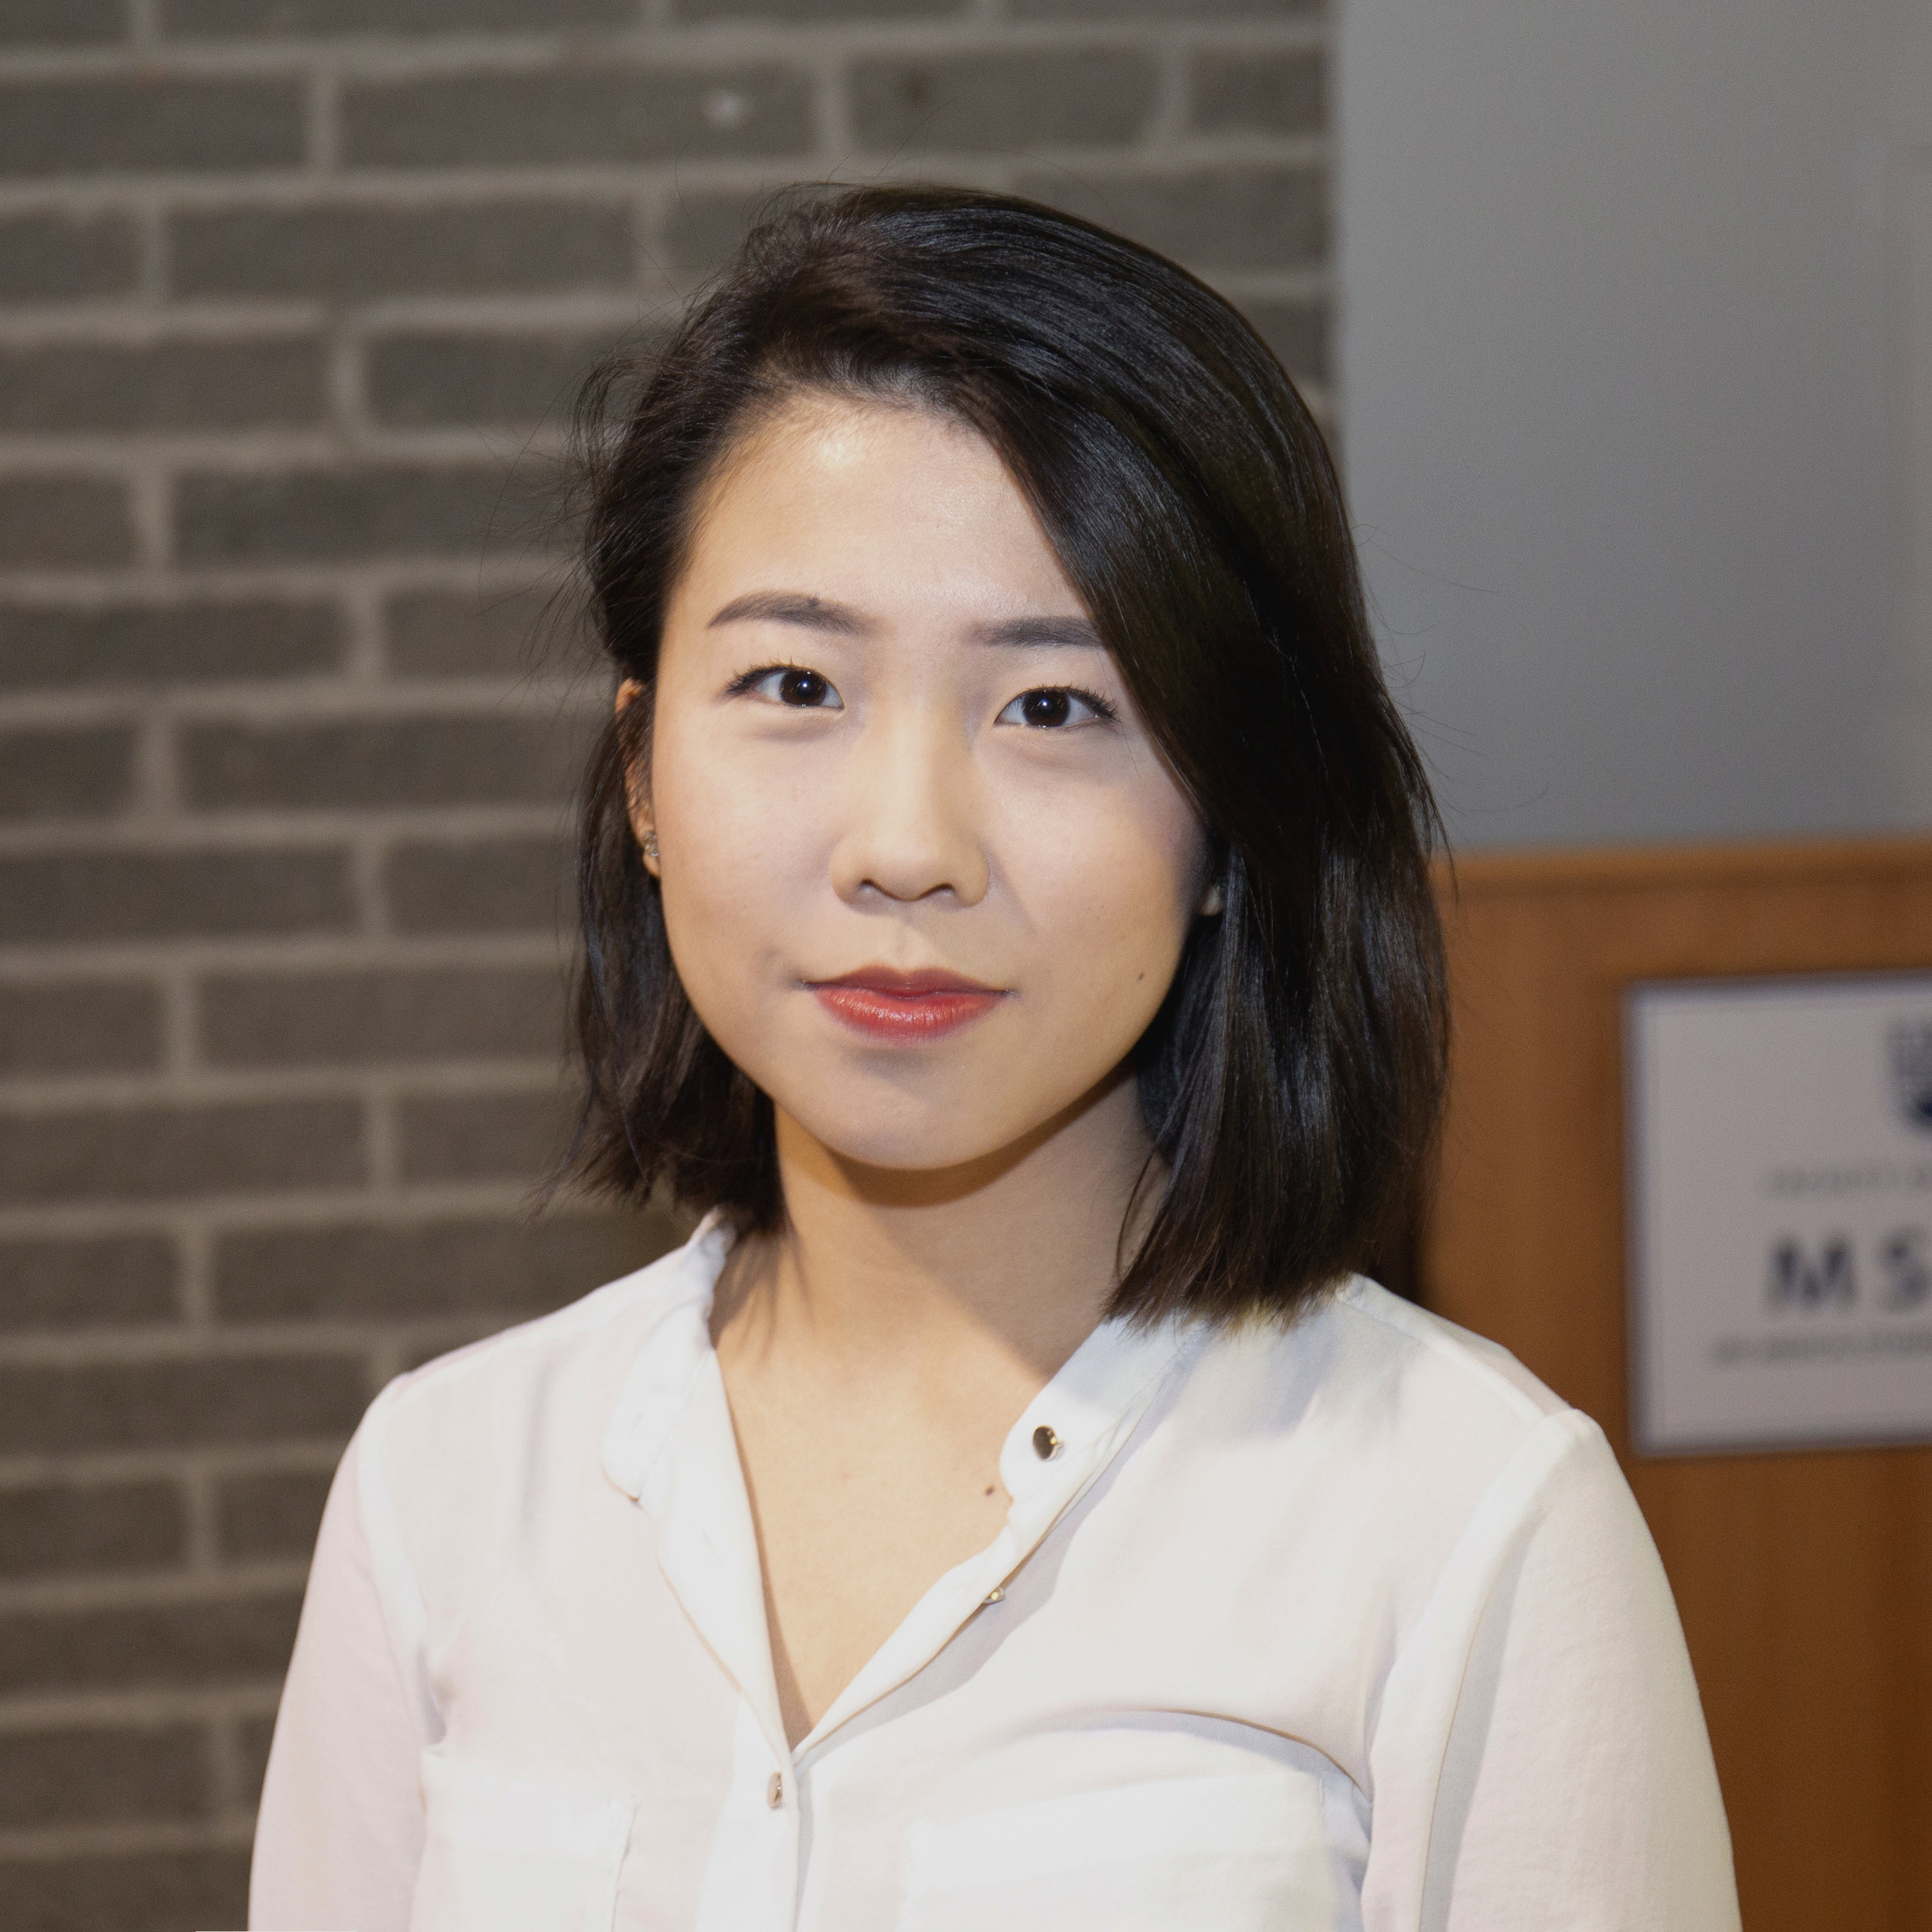 NANCY DUAN, CO-DIRECTOR - Nancy is currently in her 2nd year in her Medical Undergraduate Program at UBC. Previously she completed a BSc. in Psychology at McGill University.